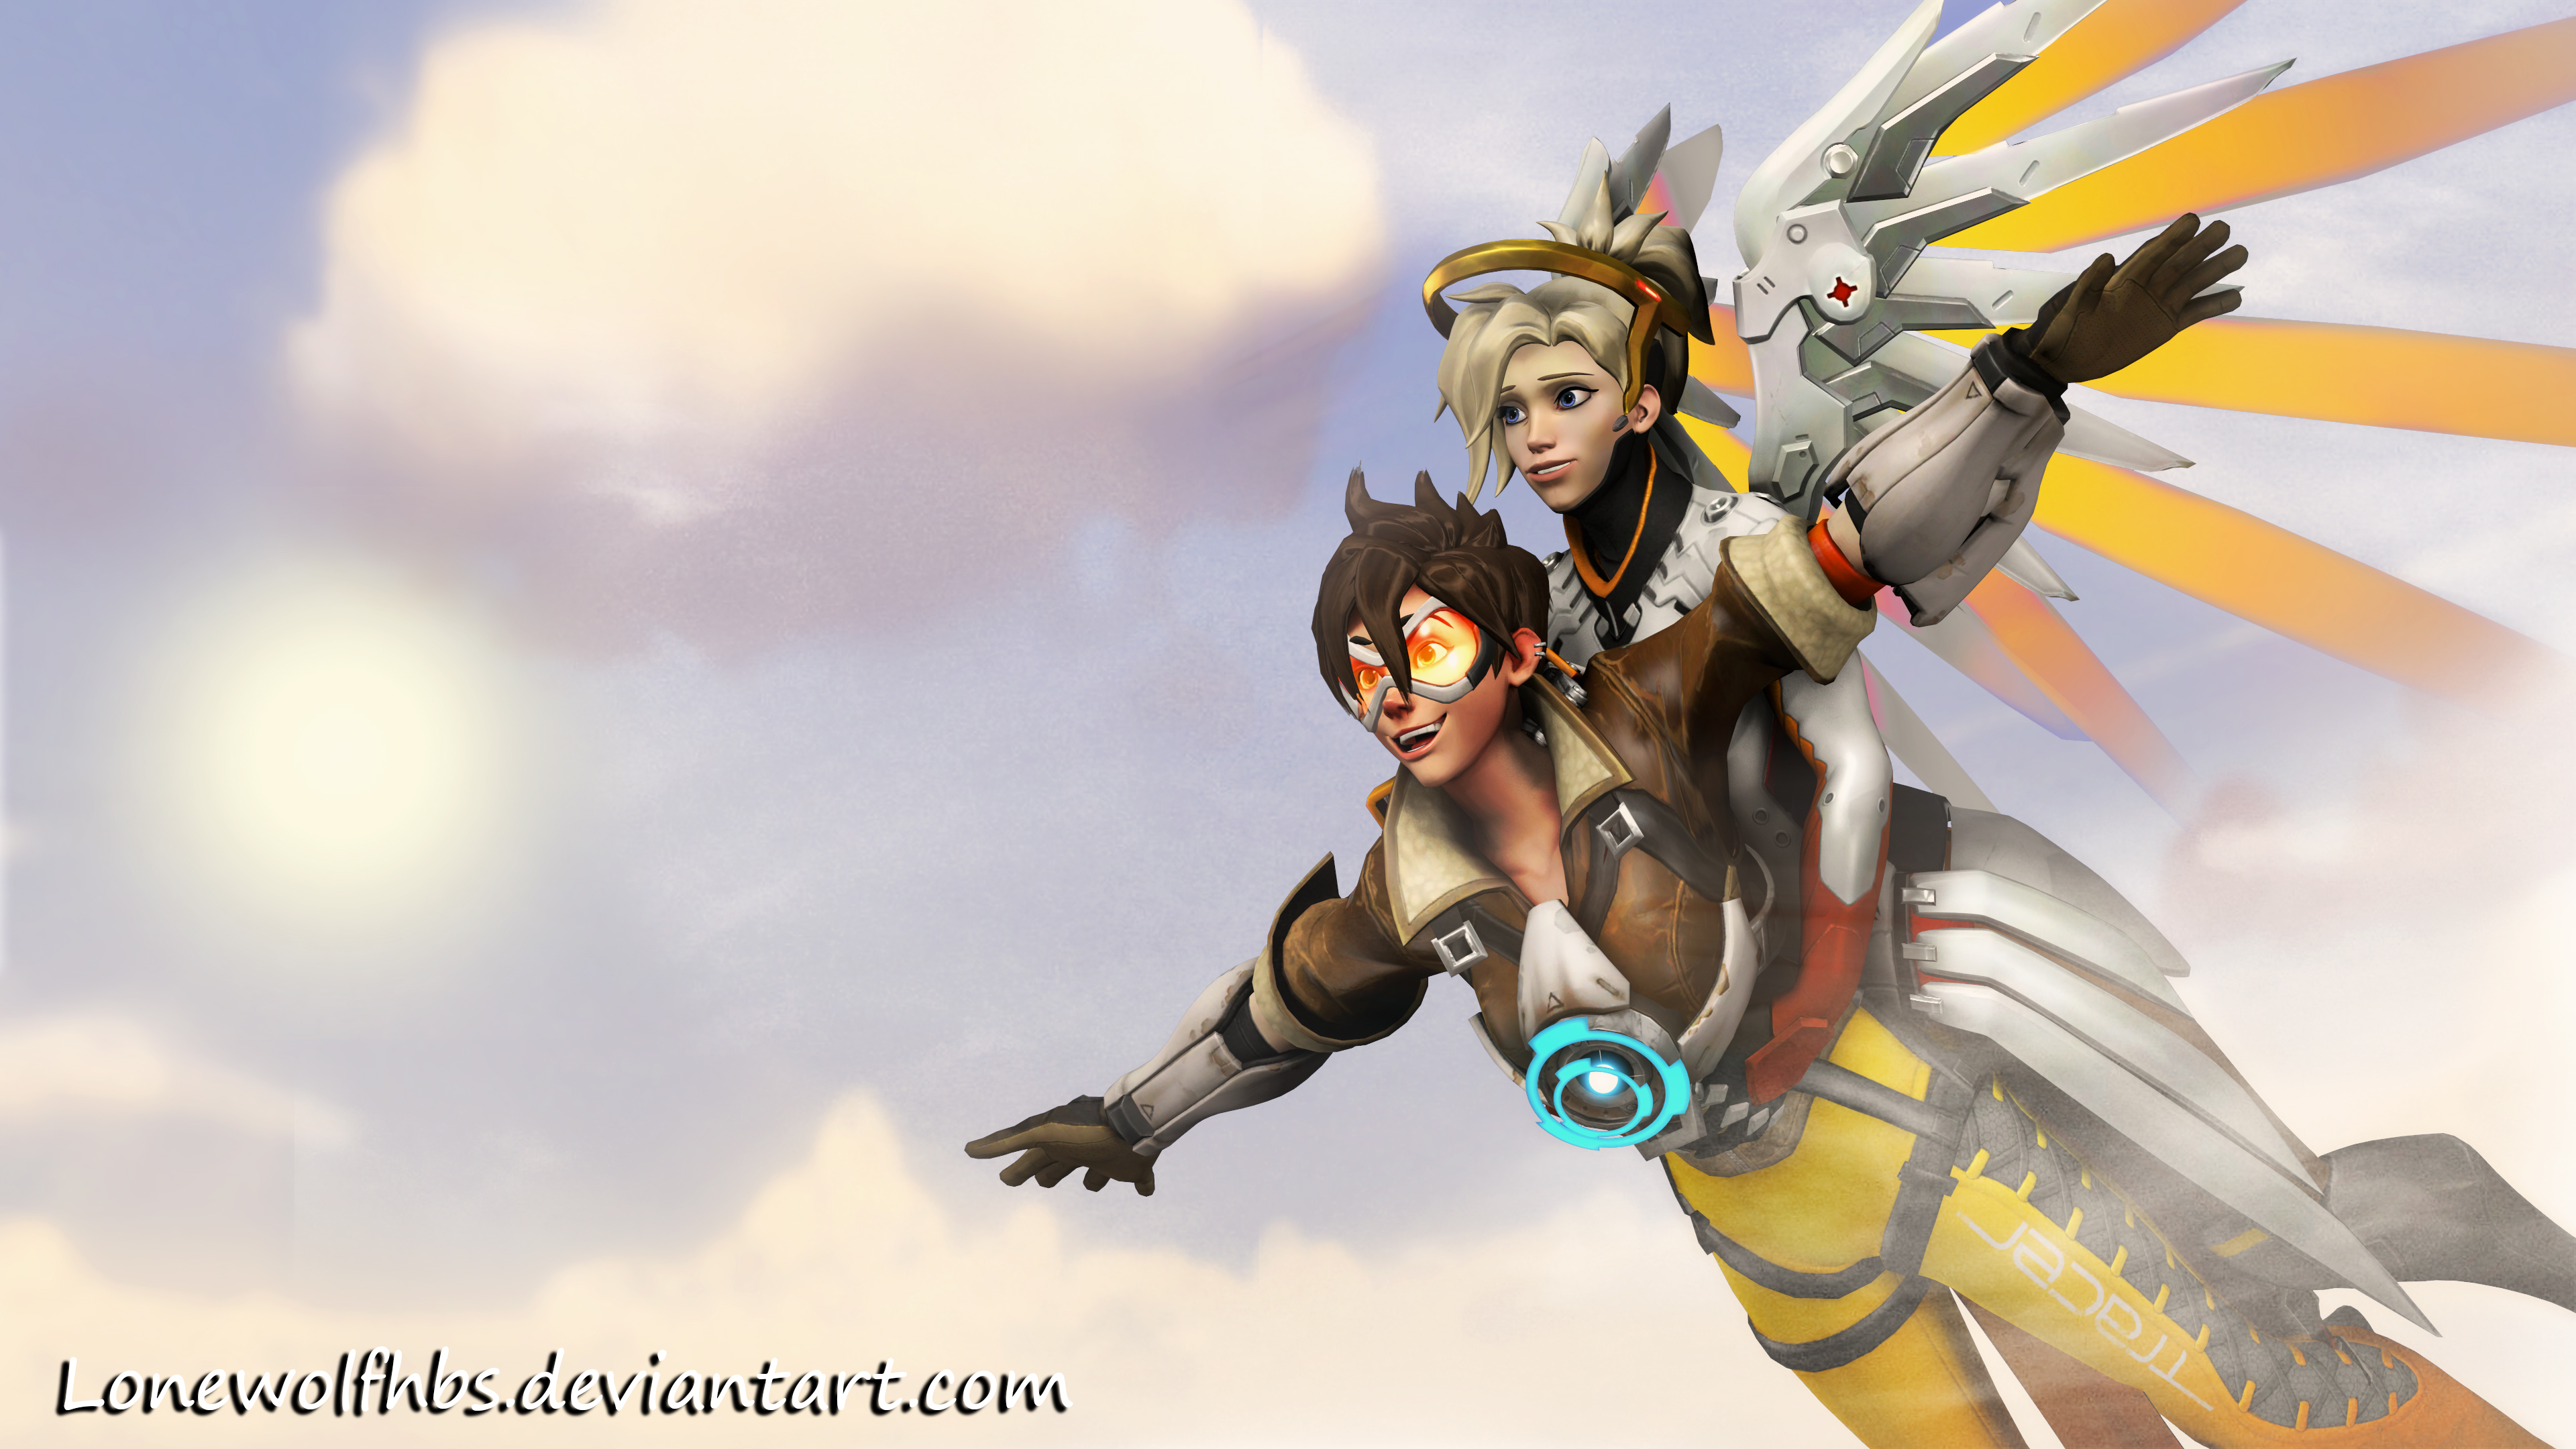 SFM] Overwatch - Giving a Lift by LoneWolfHBS on DeviantArt